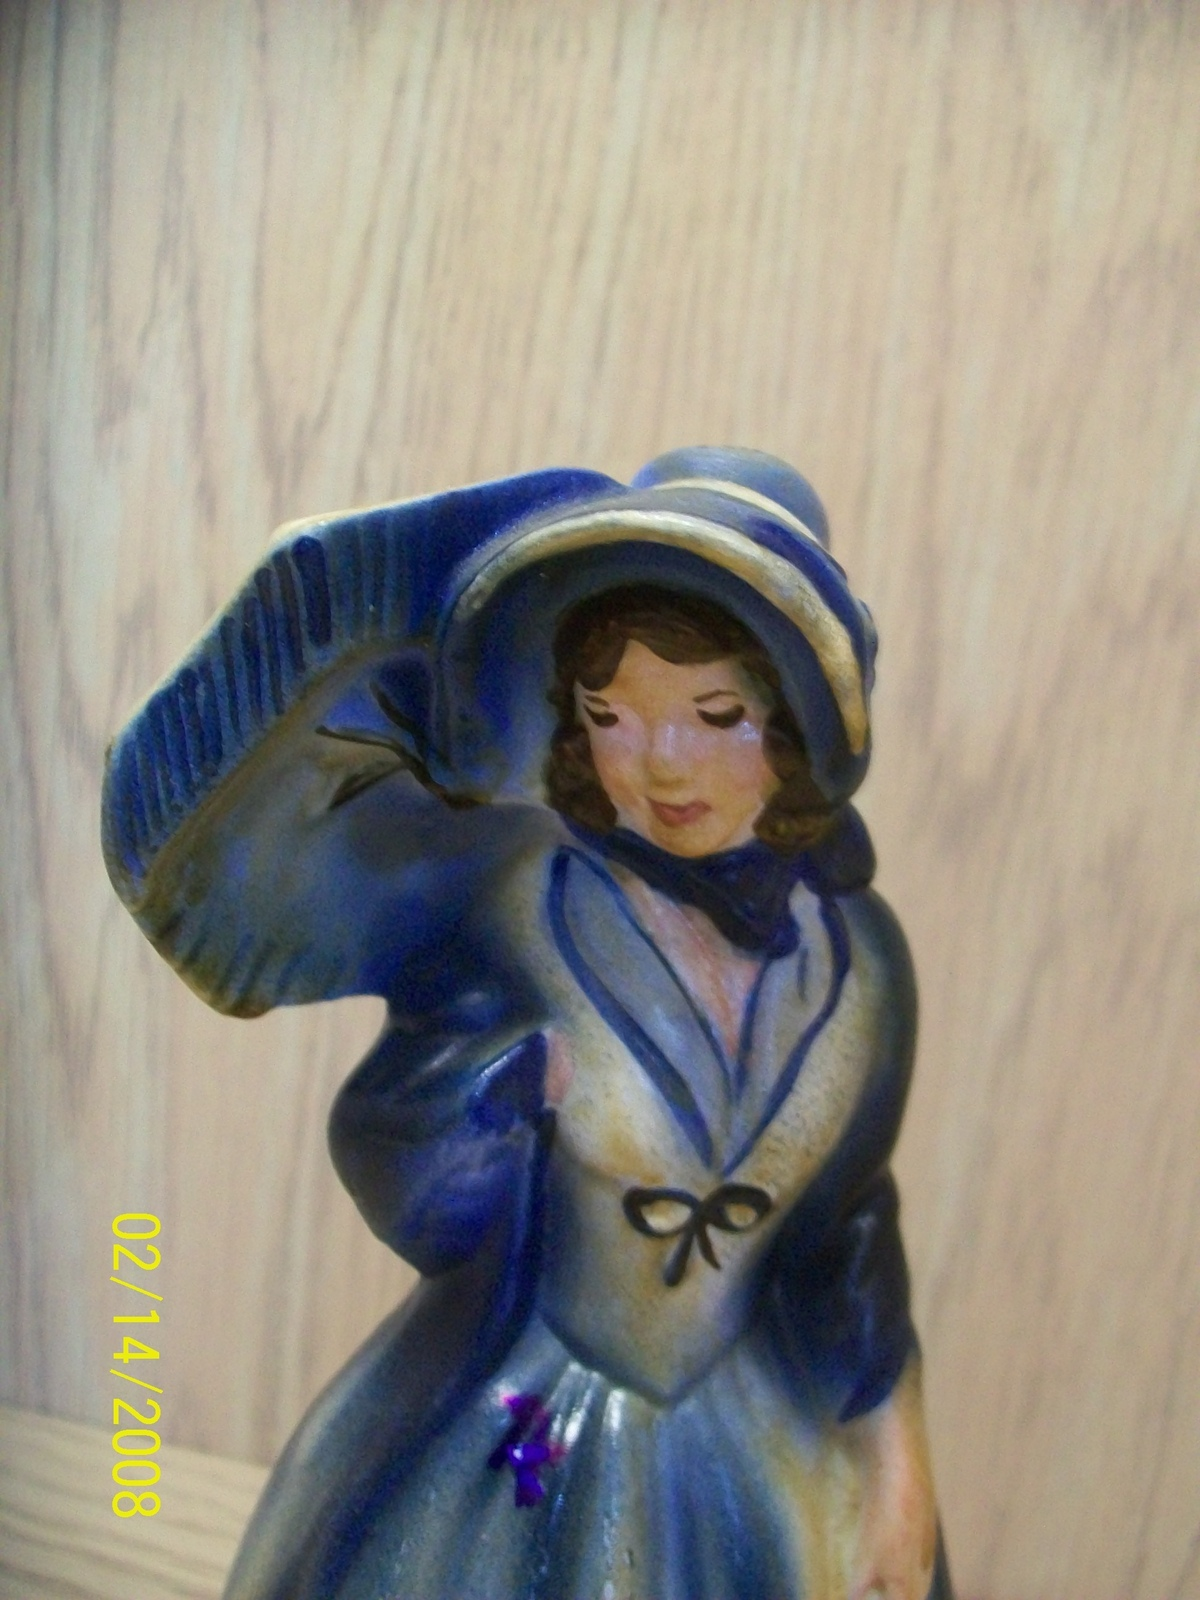 Figurine Lady in Blue with Purse and Umbrella